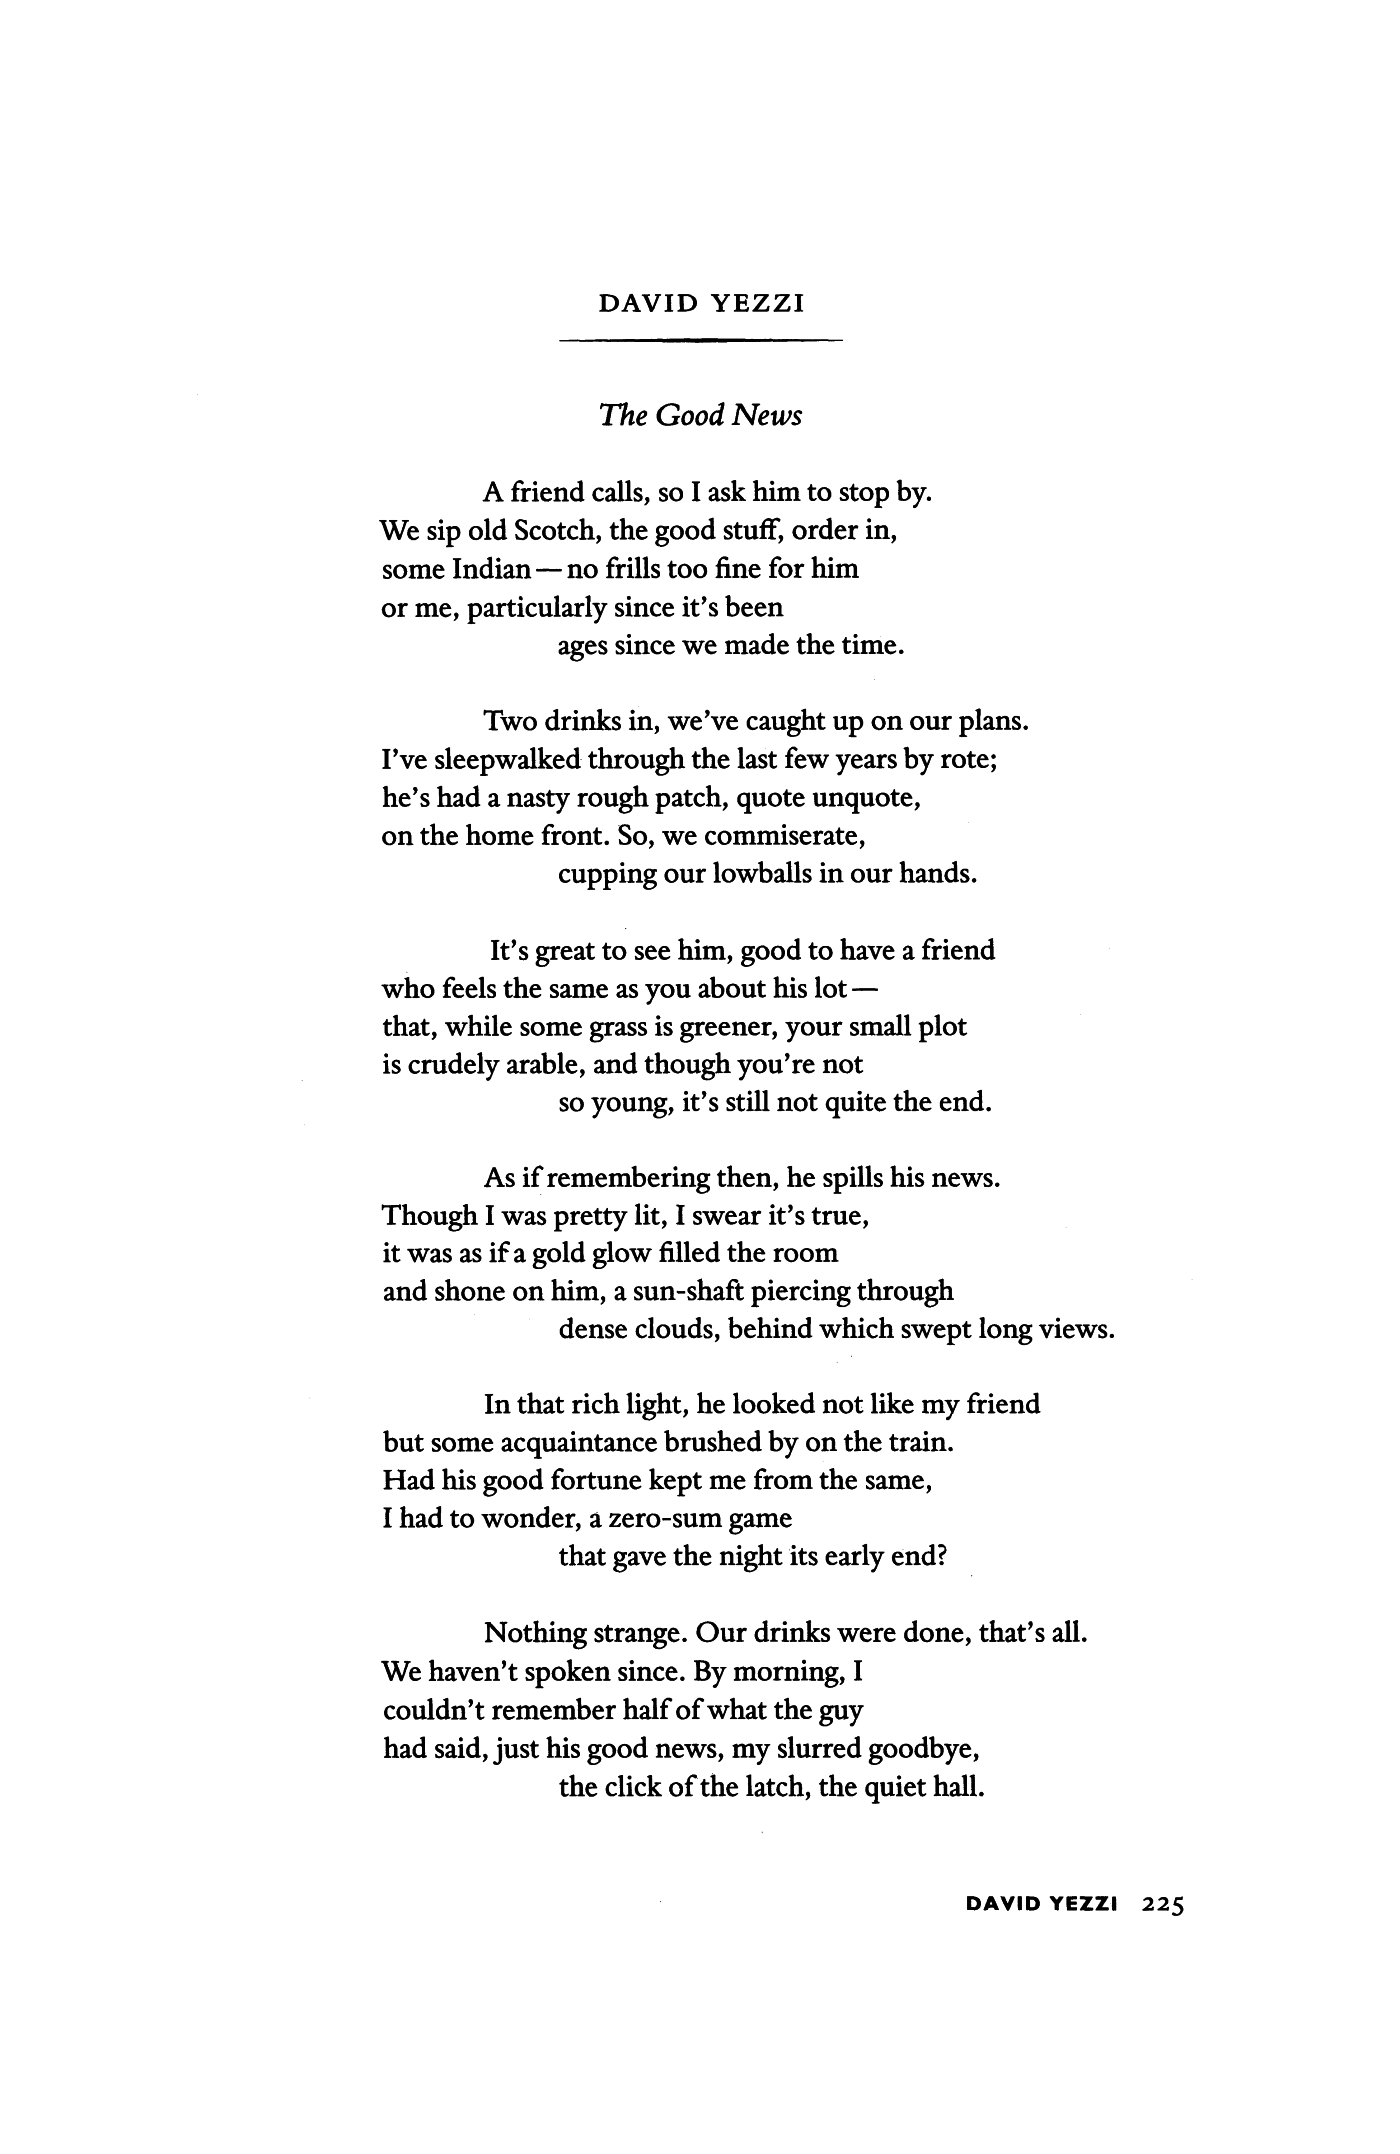 Good News Is That This Morning They >> The Good News By David Yezzi Poetry Magazine